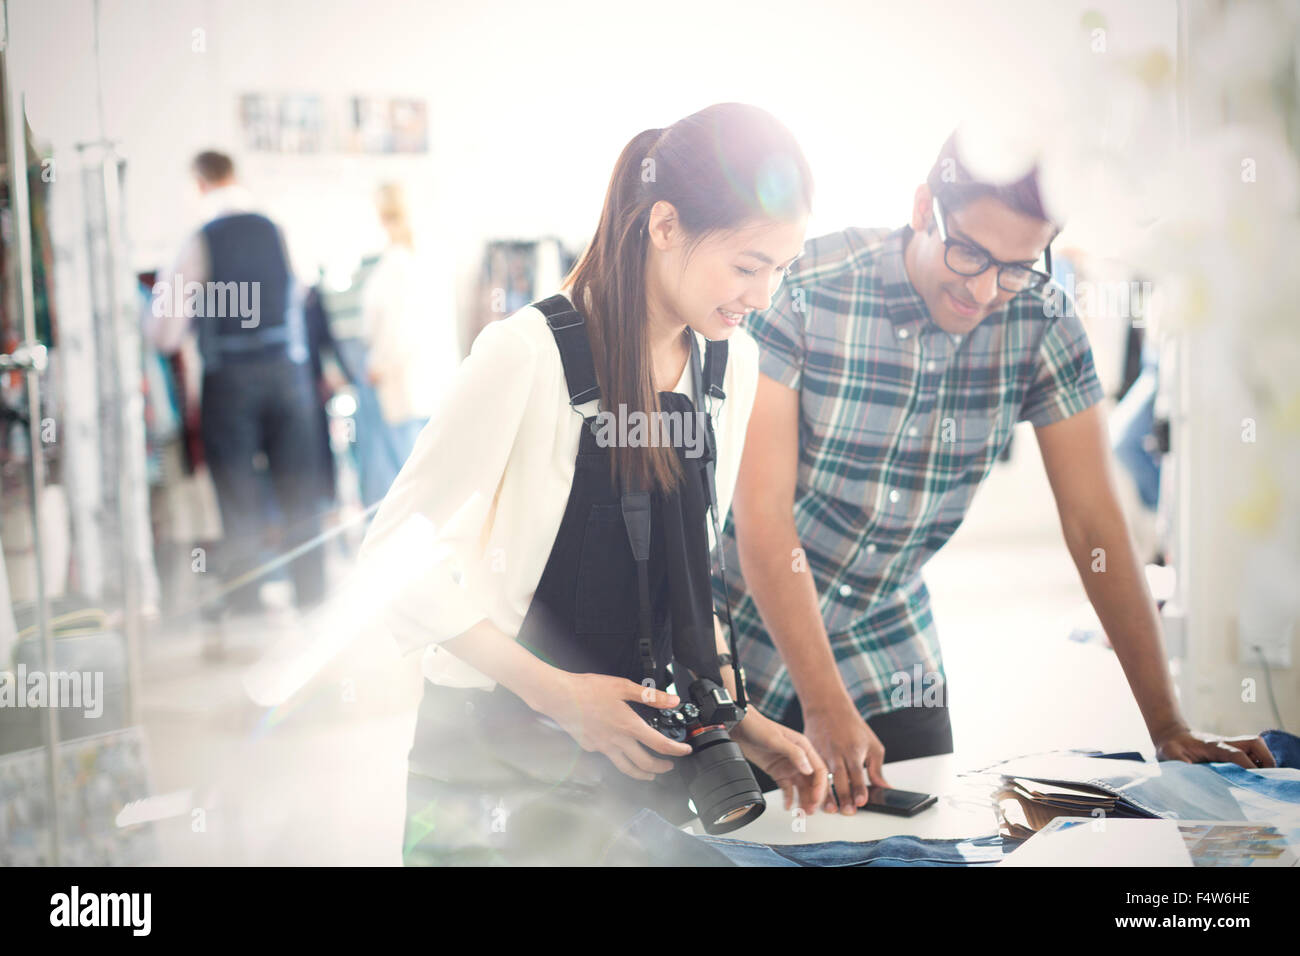 Photographer and fashion designer viewing proofs in sunny office - Stock Image